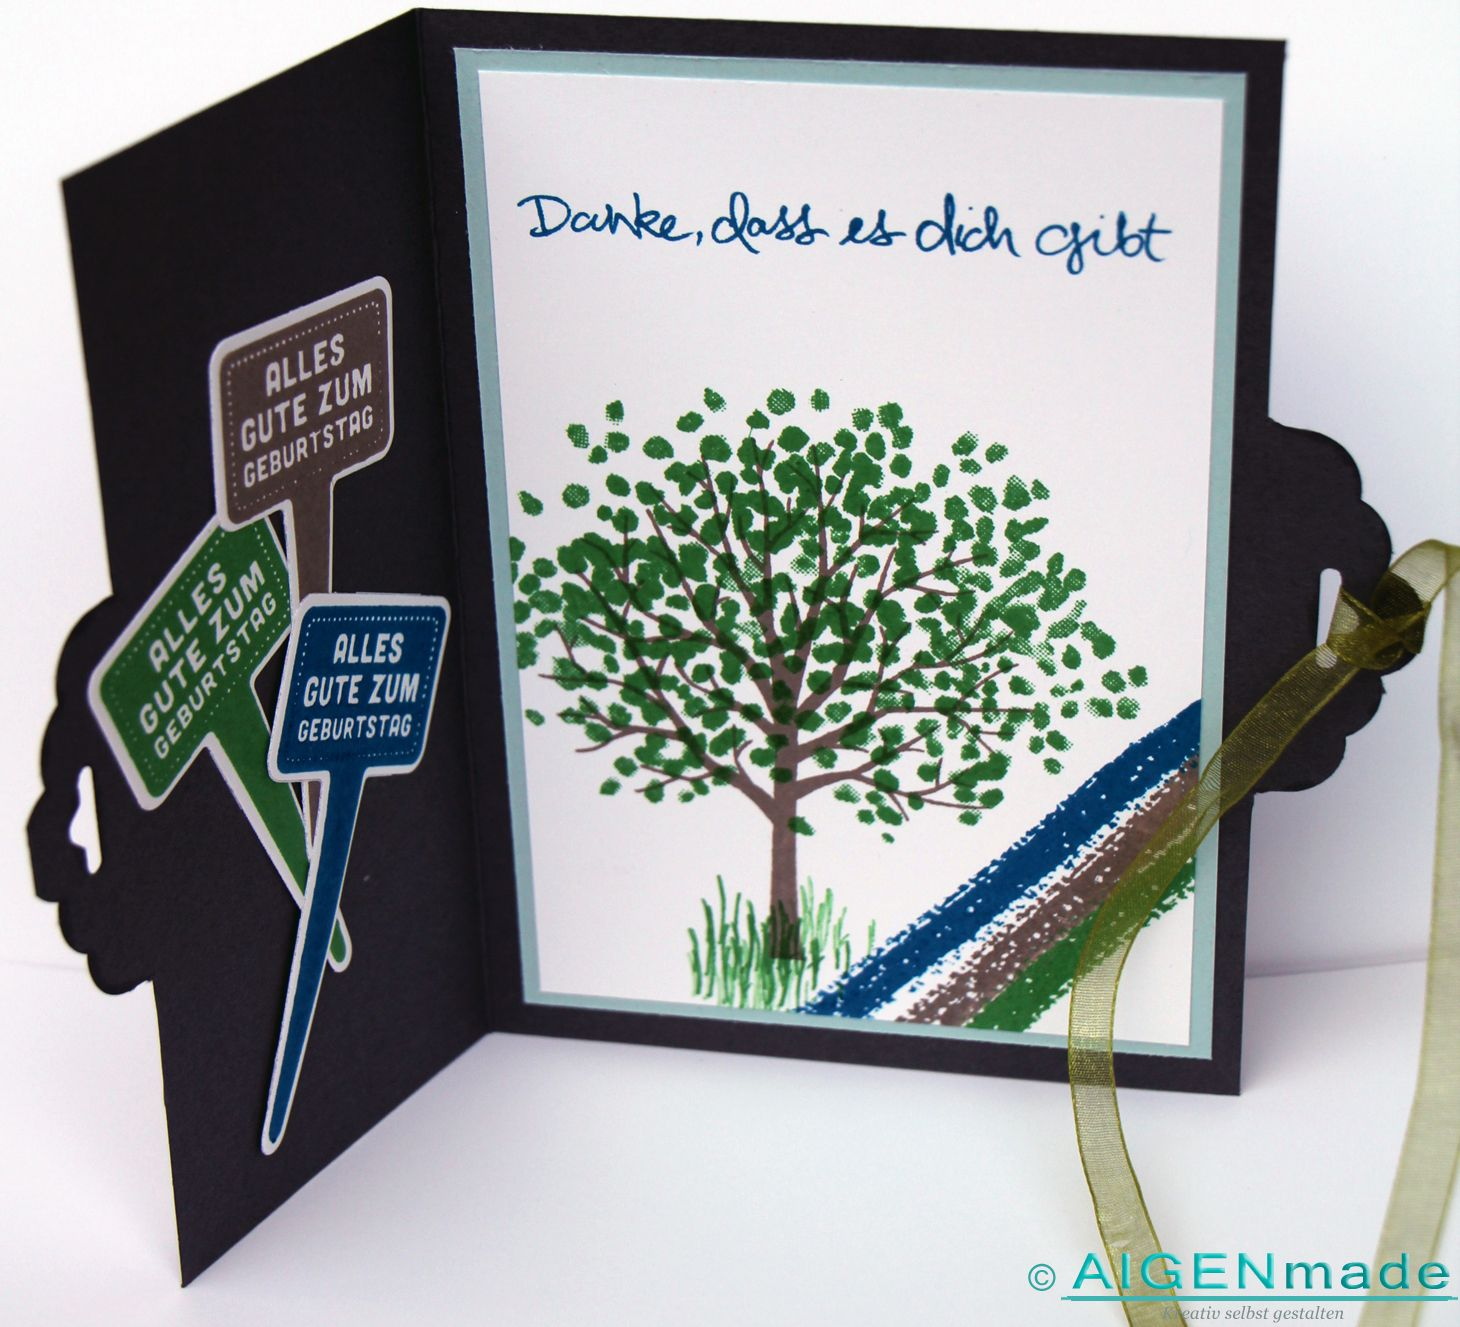 geburtstagskarte mann birthday card man stampin up geburtstag gr n blau grau green blue karte. Black Bedroom Furniture Sets. Home Design Ideas